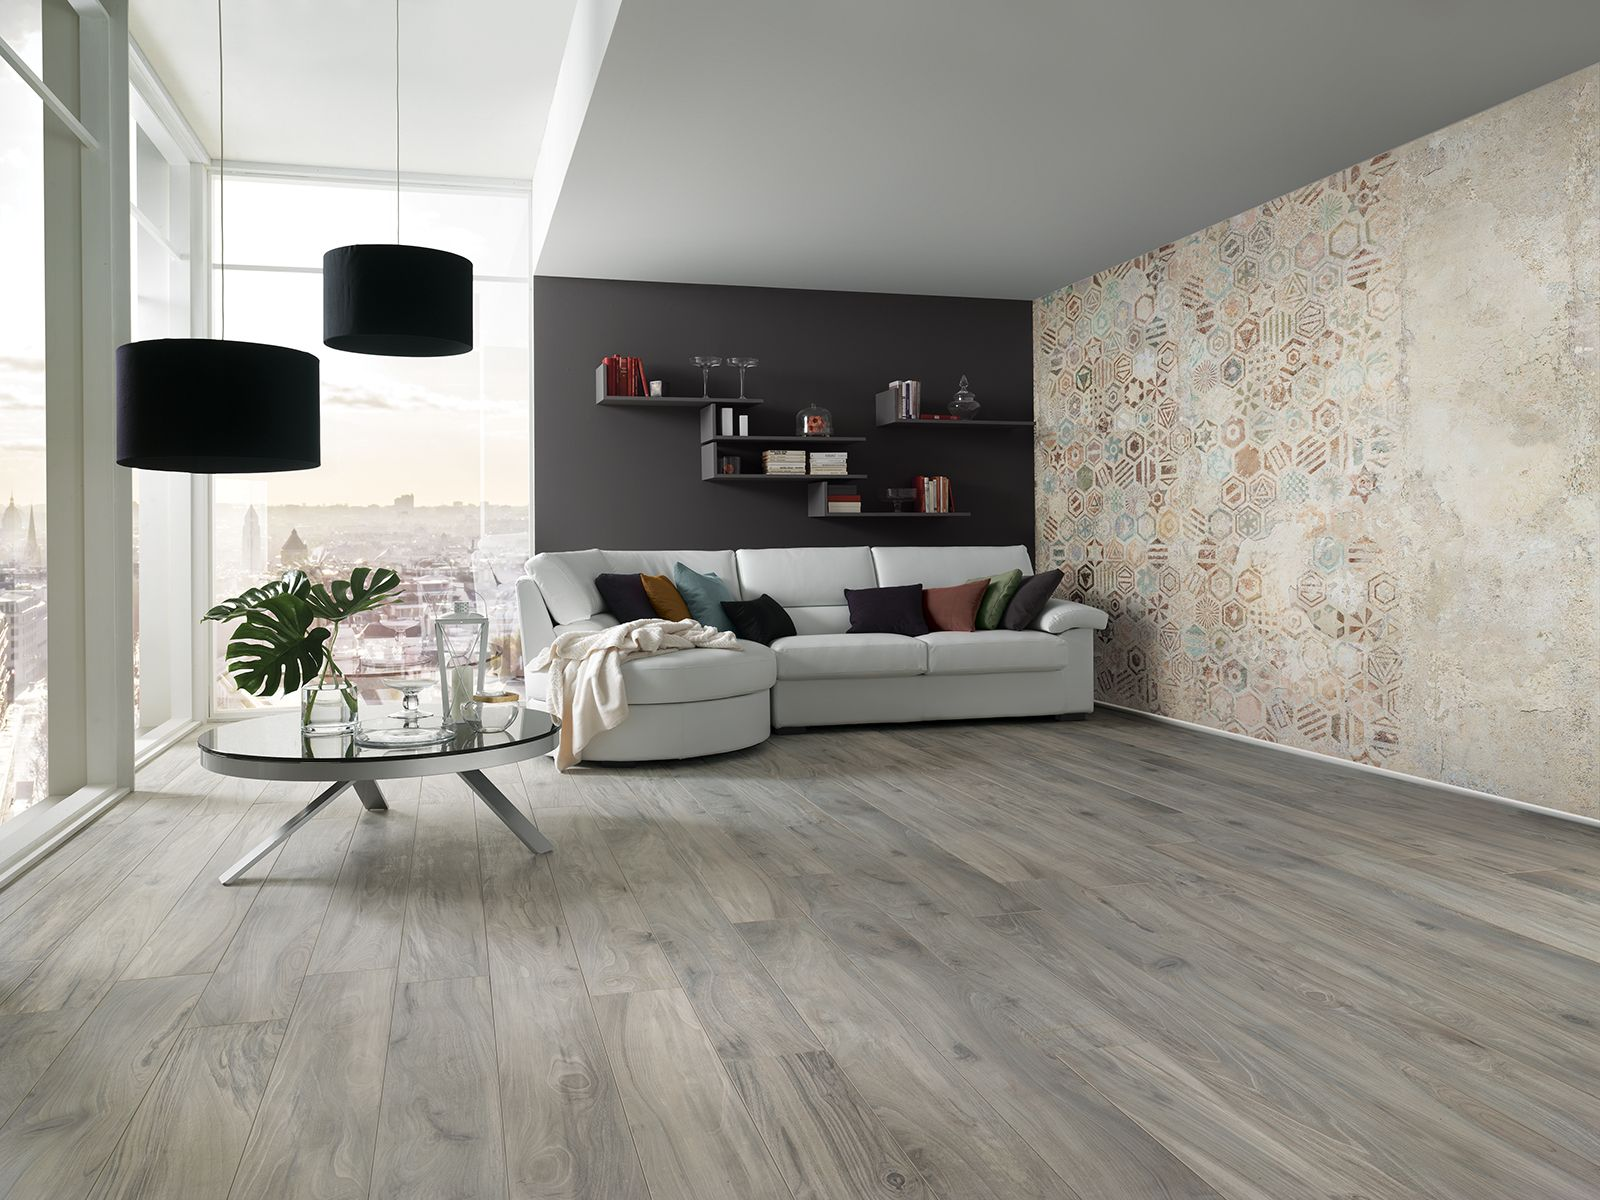 La fabbrica ceramiche amazon collection nawa lafabbrica